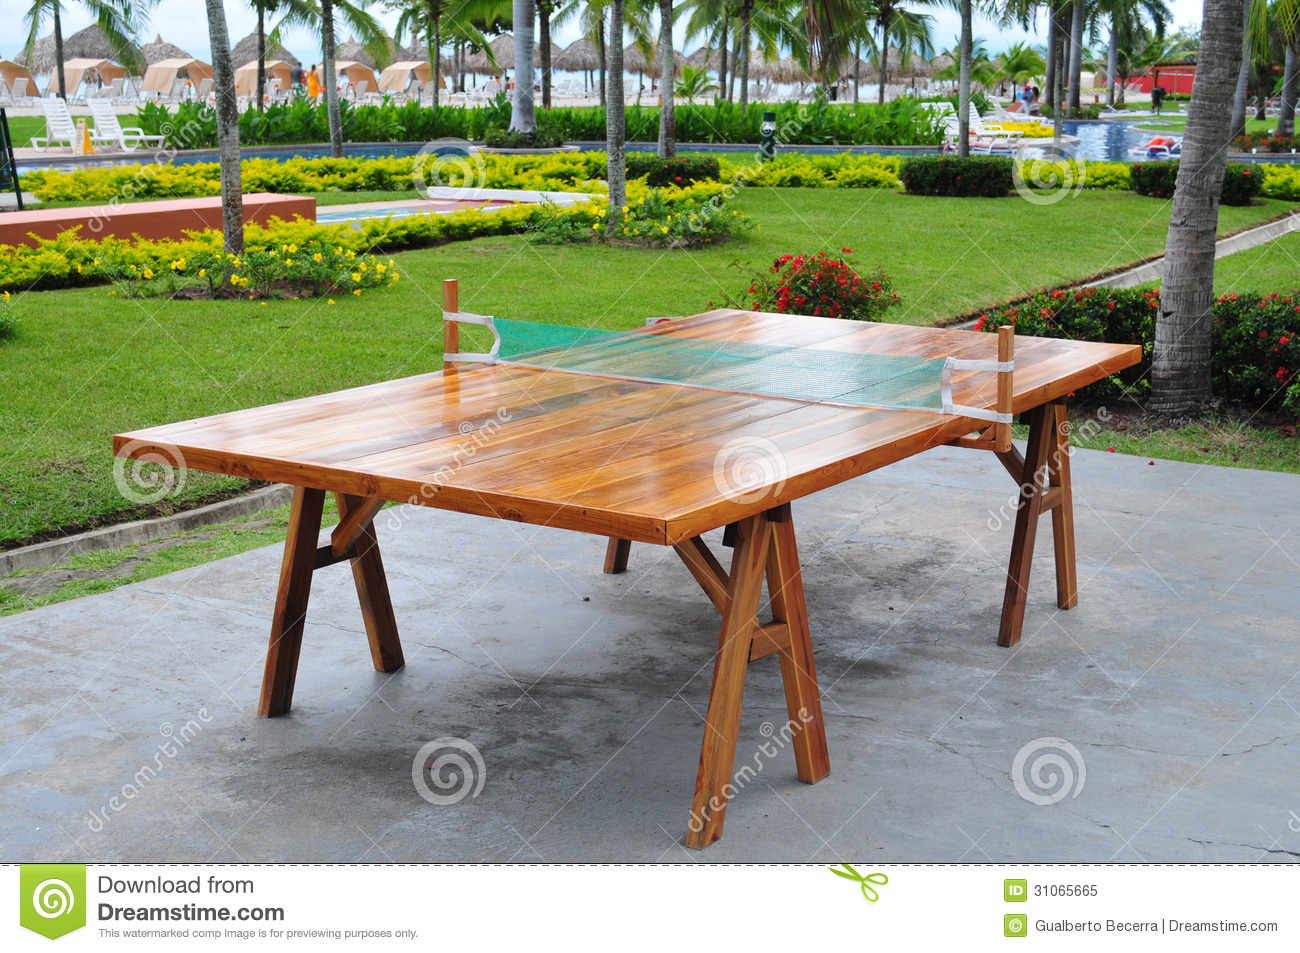 Ping Pong Table Royalty Free Stock Photo - Image: 31065665